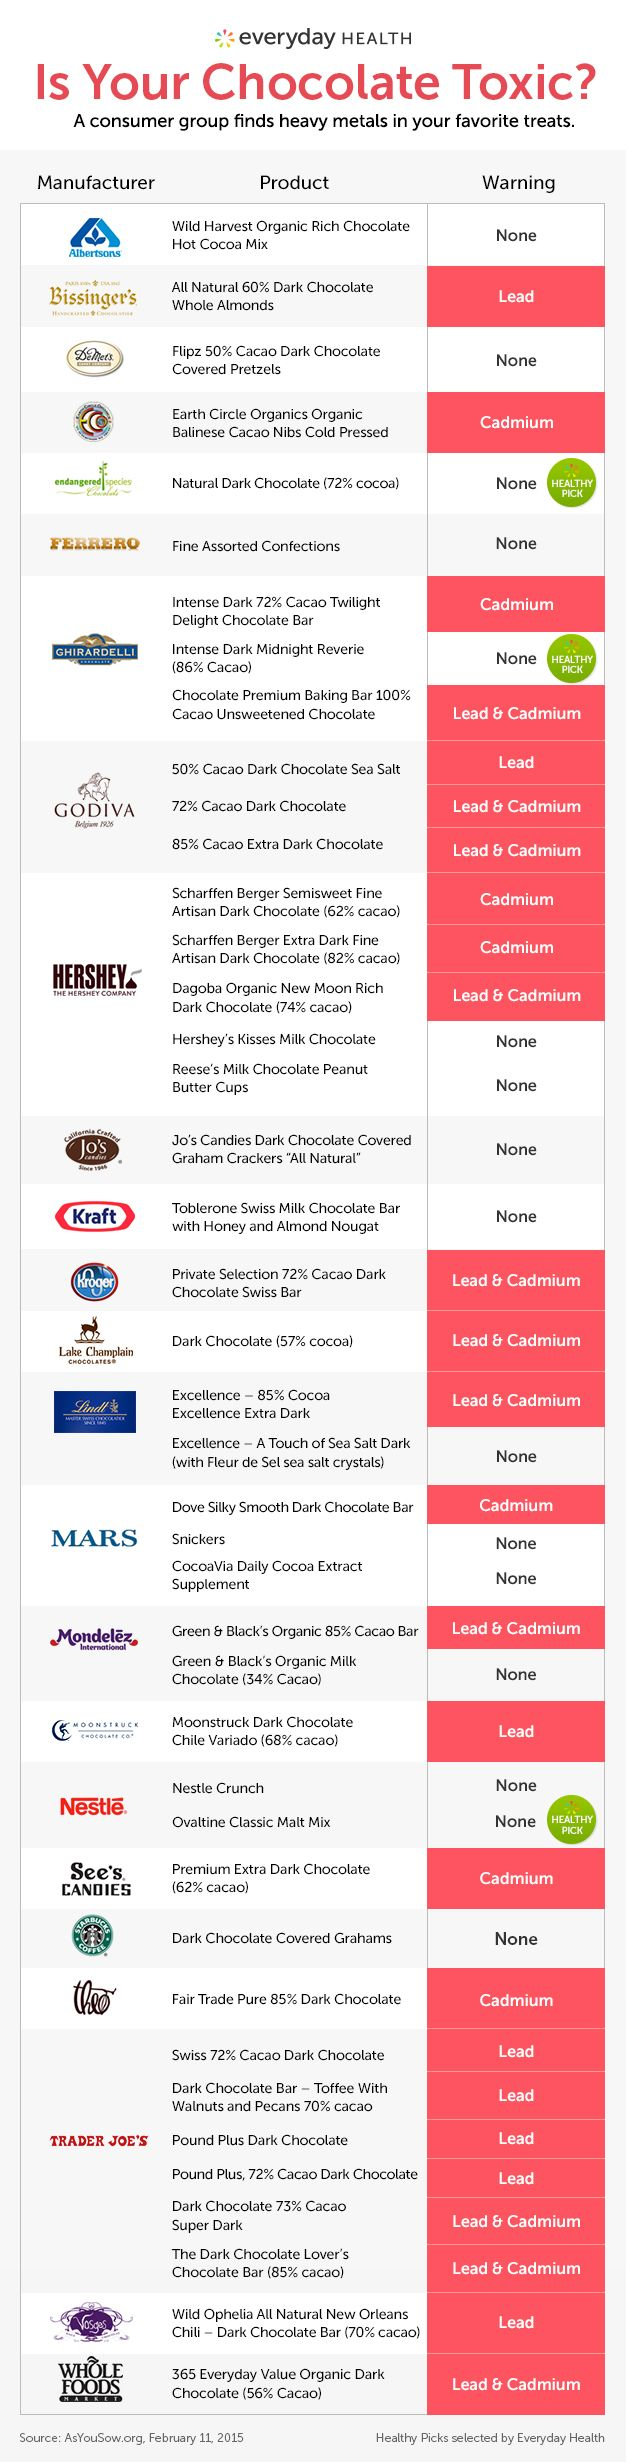 Your Favorite Chocolate May Contain Lead A study shows that some chocolate, even the dark variety with more than 60% cacao, contains potentially toxic levels of lead and cadmium. HereÆs a list of chocolate products that have a presence of heavy metals.  »